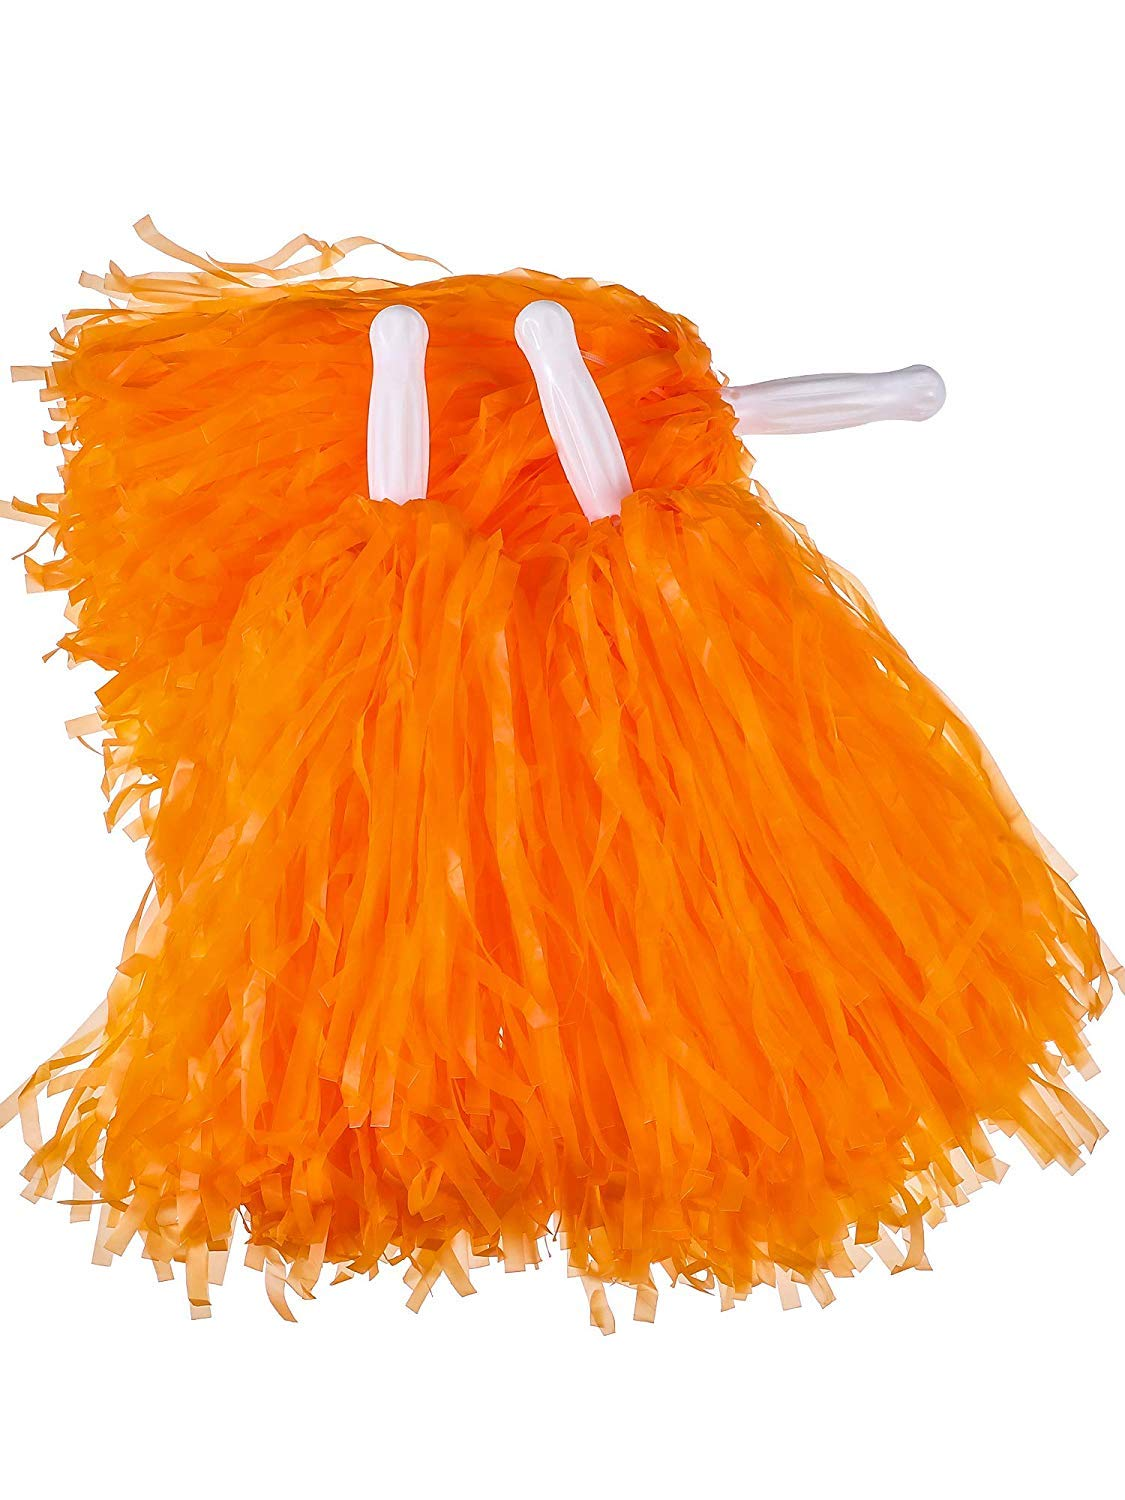 Lot de 12 pompons Cheerleader pour football basket-ball Cheers avec poignée en plastique PUZINE